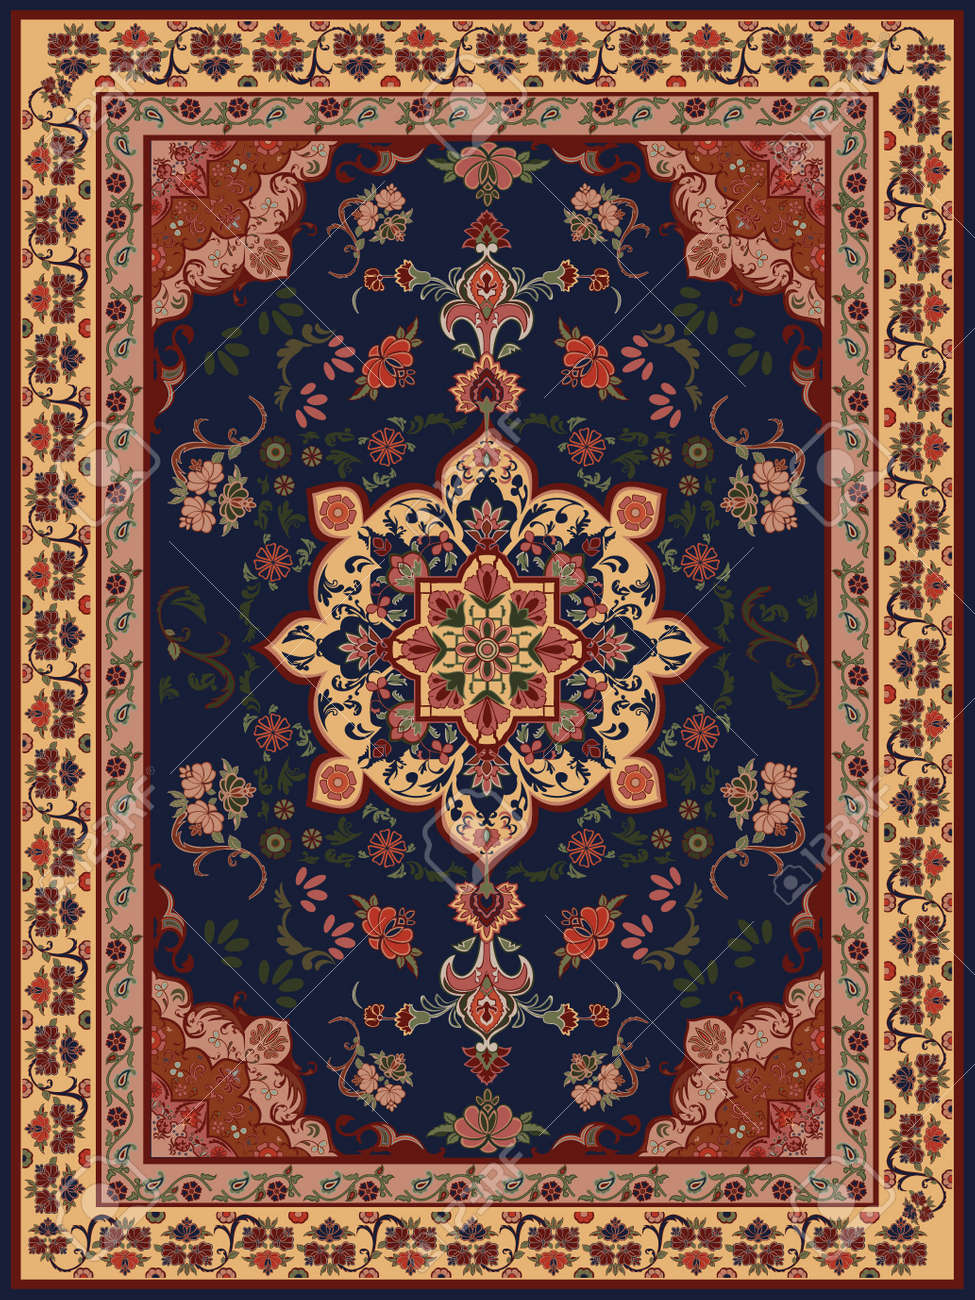 Carpet Design Gorgeous Oriental Floral Carpet Design Royalty Free Cliparts Vectors And . 2017